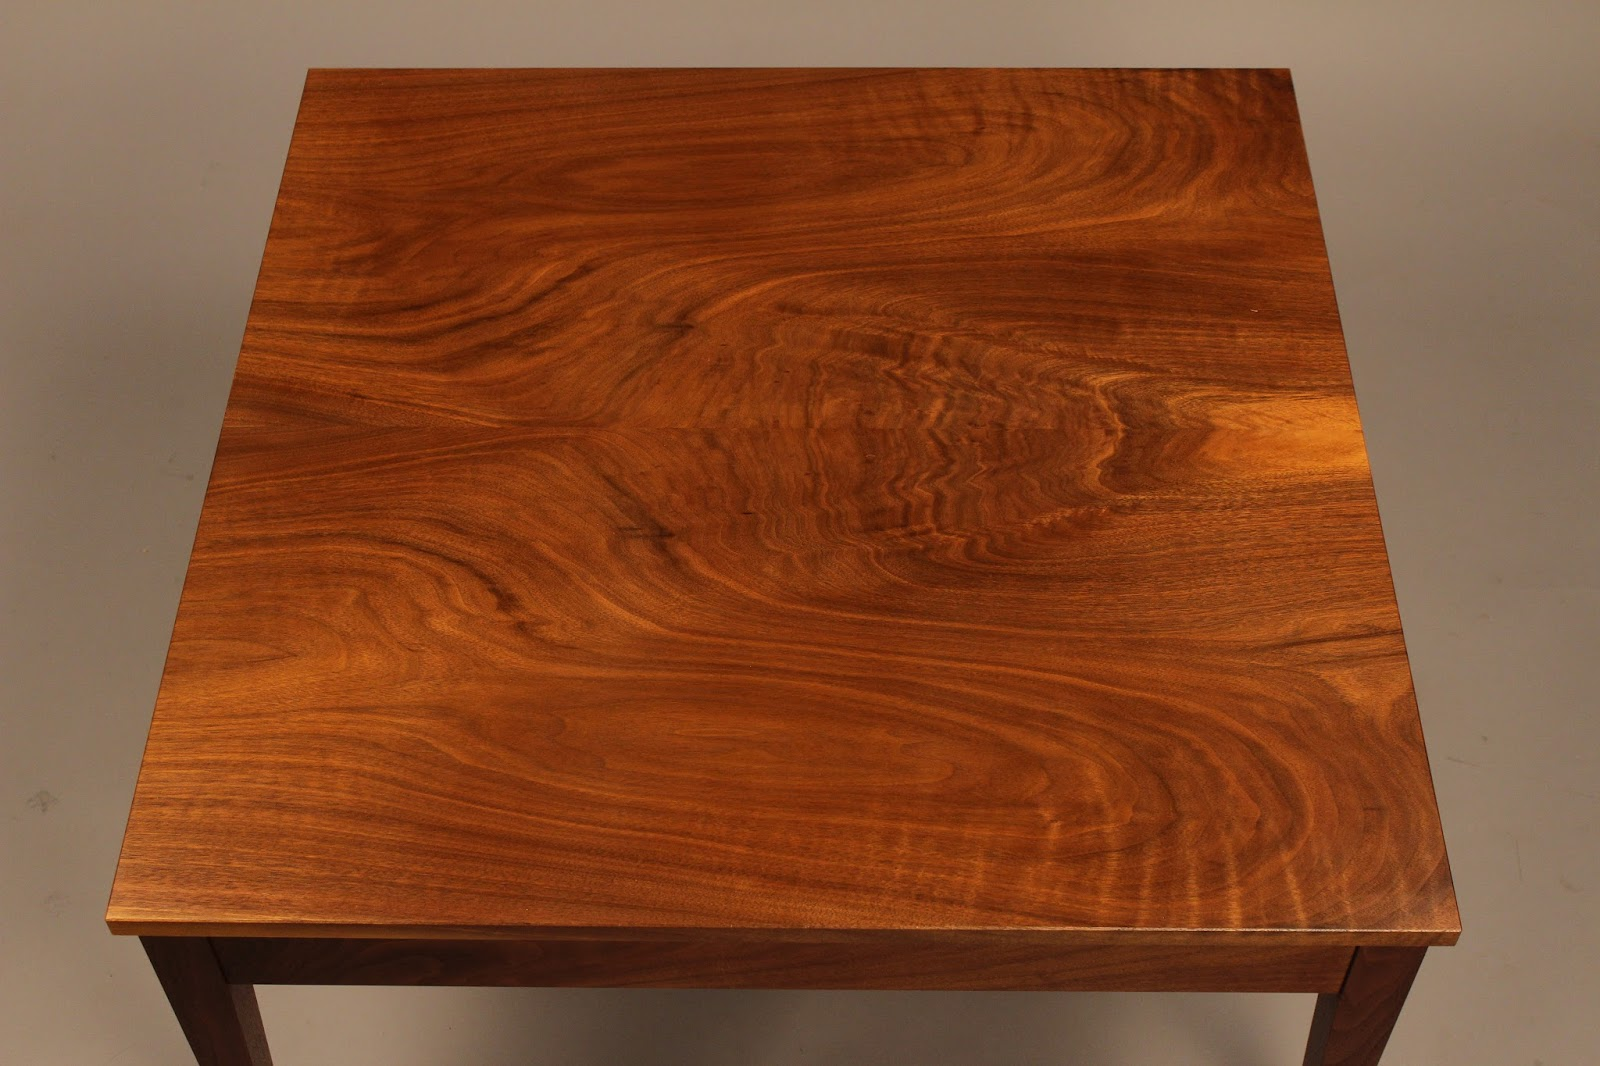 Book-matched walnut top solid wood